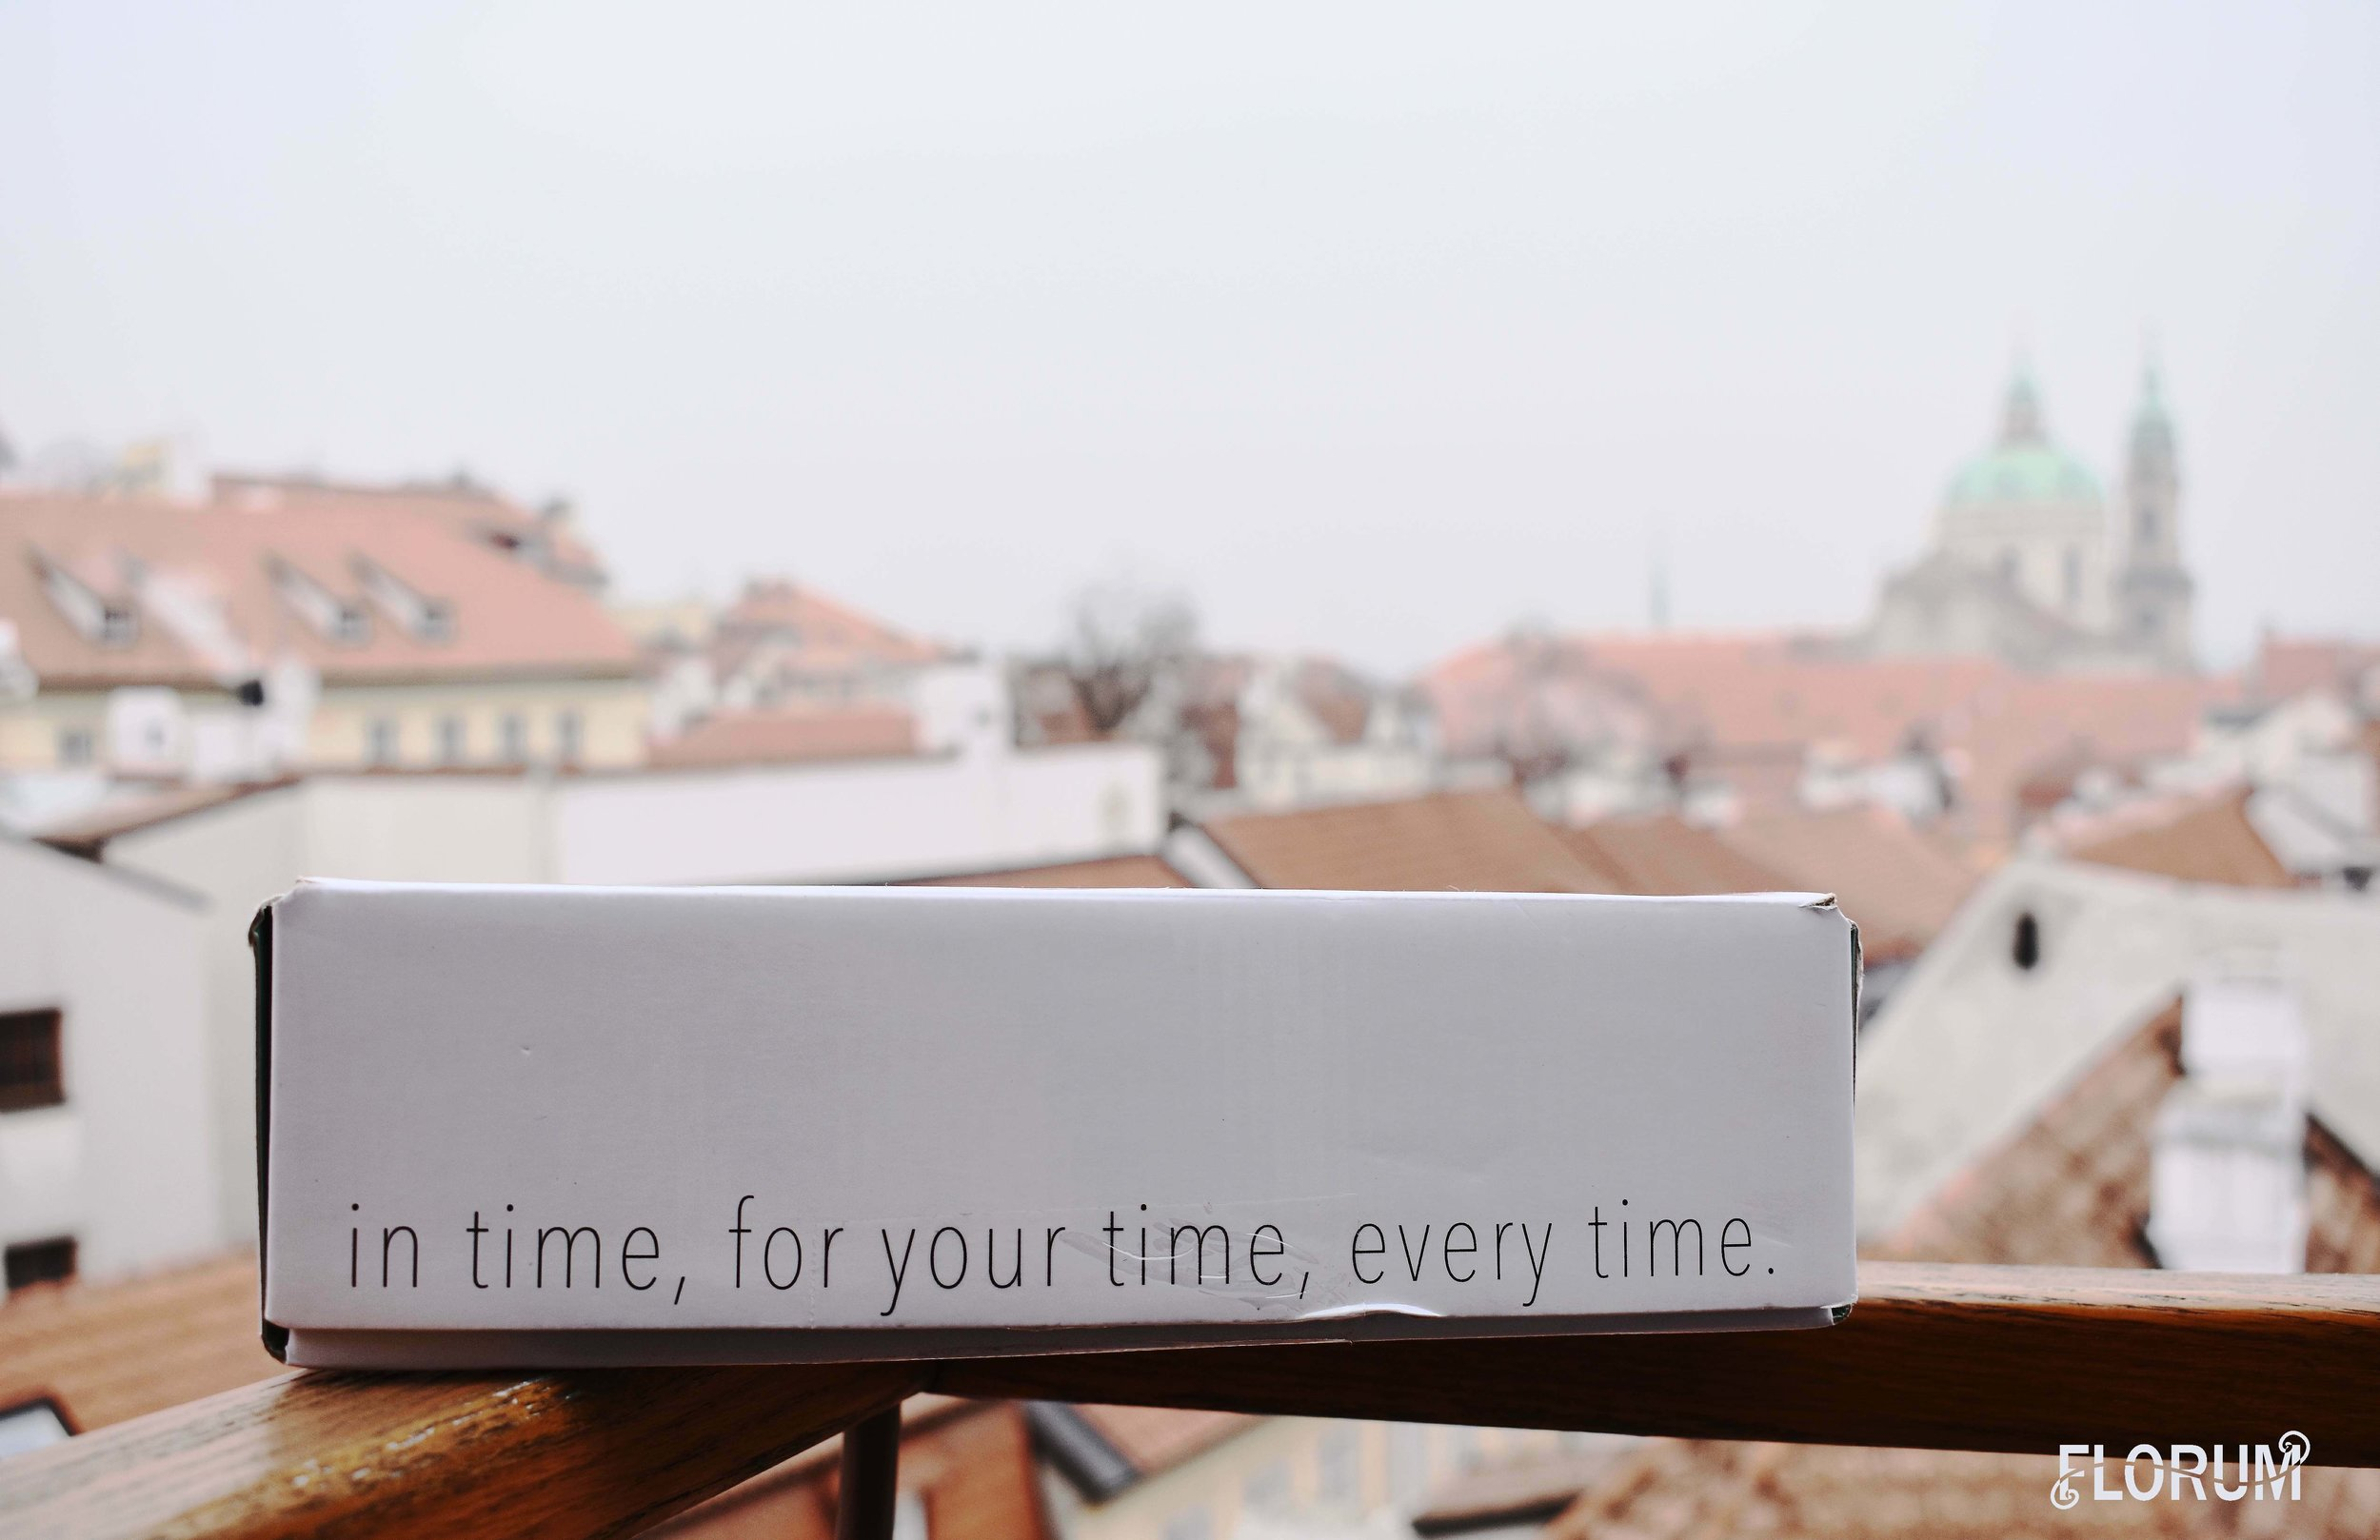 Ellebox - organic tampons - natural - in time for your time - natural sustainable eco travel - the comfort box - florum fashion magazine - noelle lynne in time for your time every month